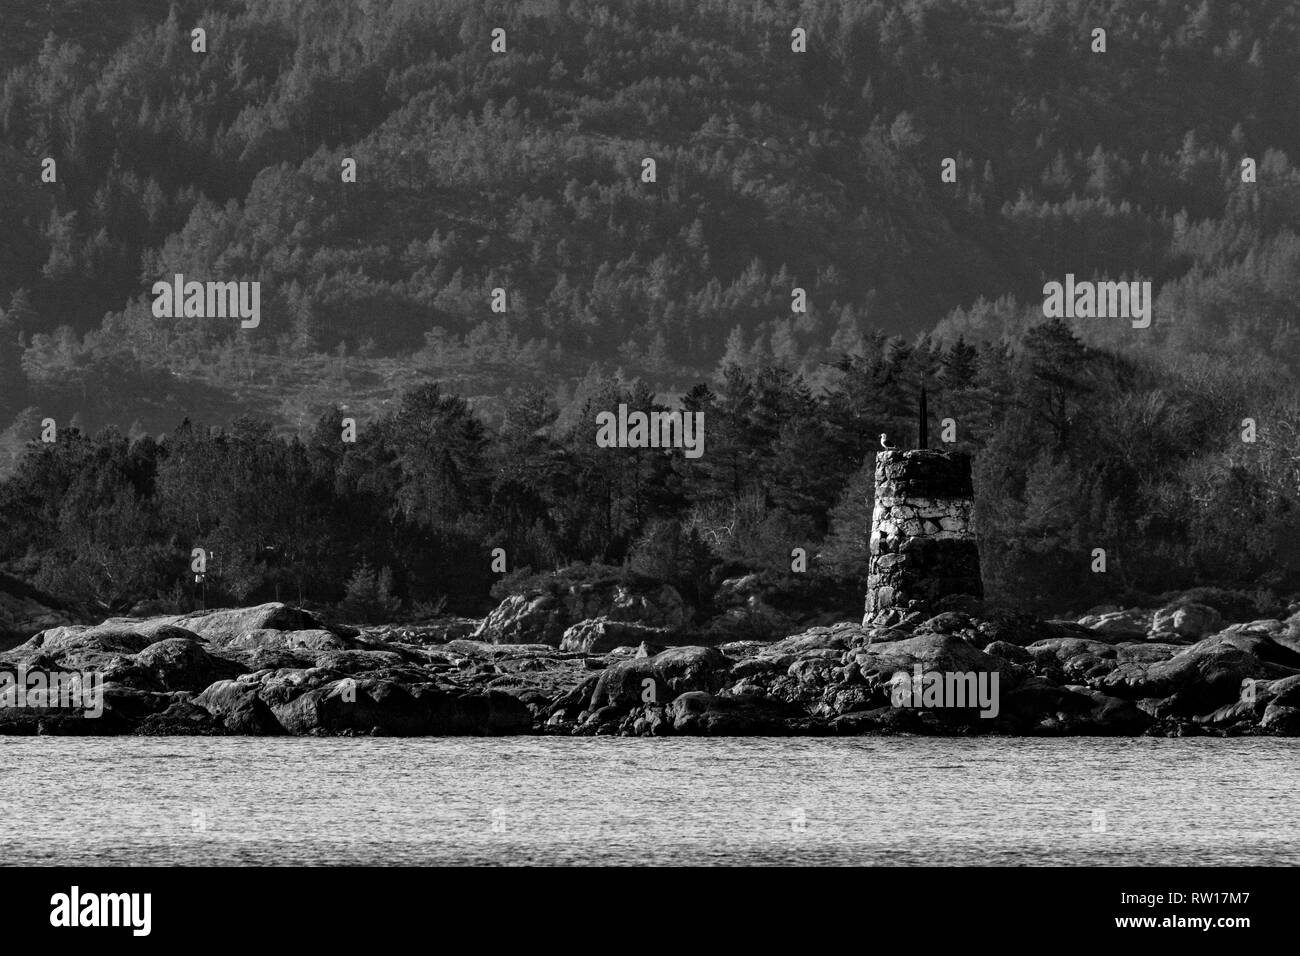 Old stone landmark (cairn) for ships' navigation around the many islands in Raunefjorden, outside of Bergen, Norway - Stock Image